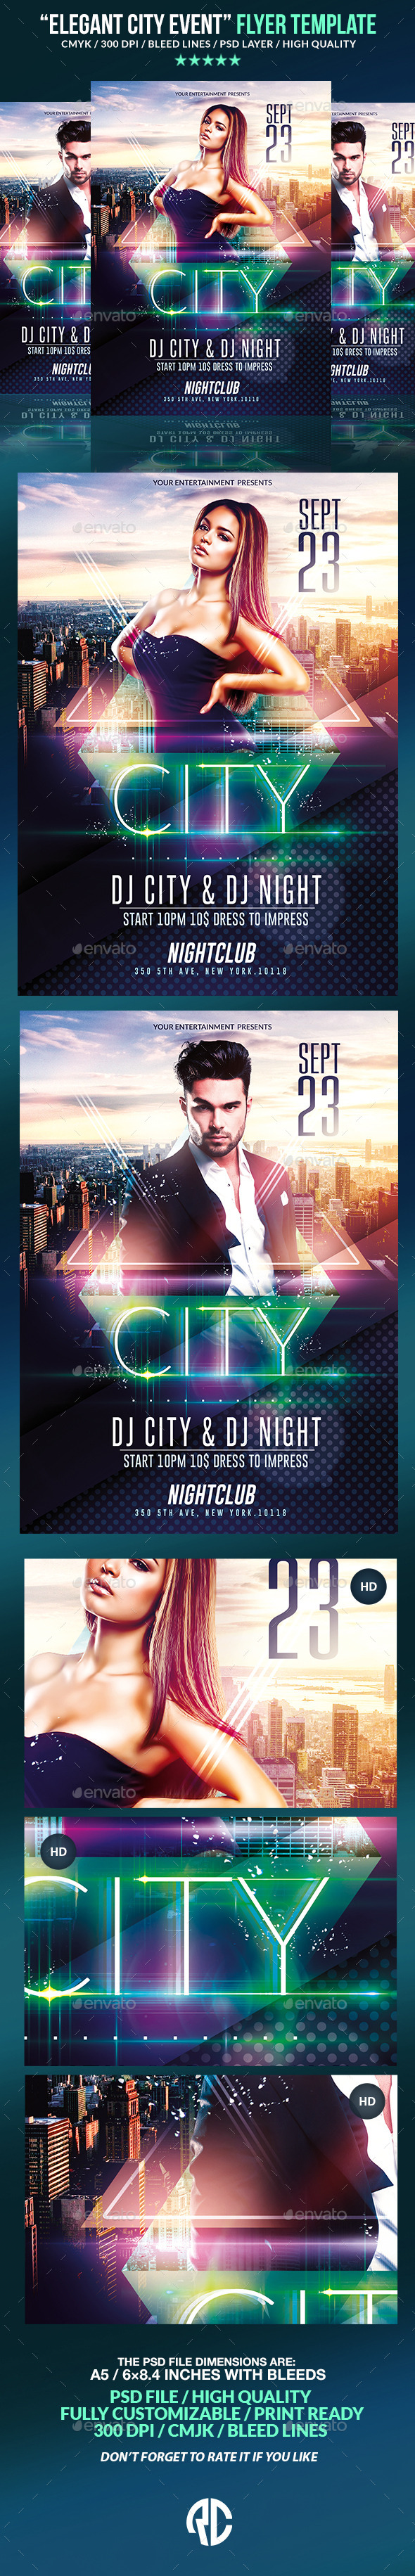 Elegant City Event | Psd Flyer Template  - Clubs & Parties Events